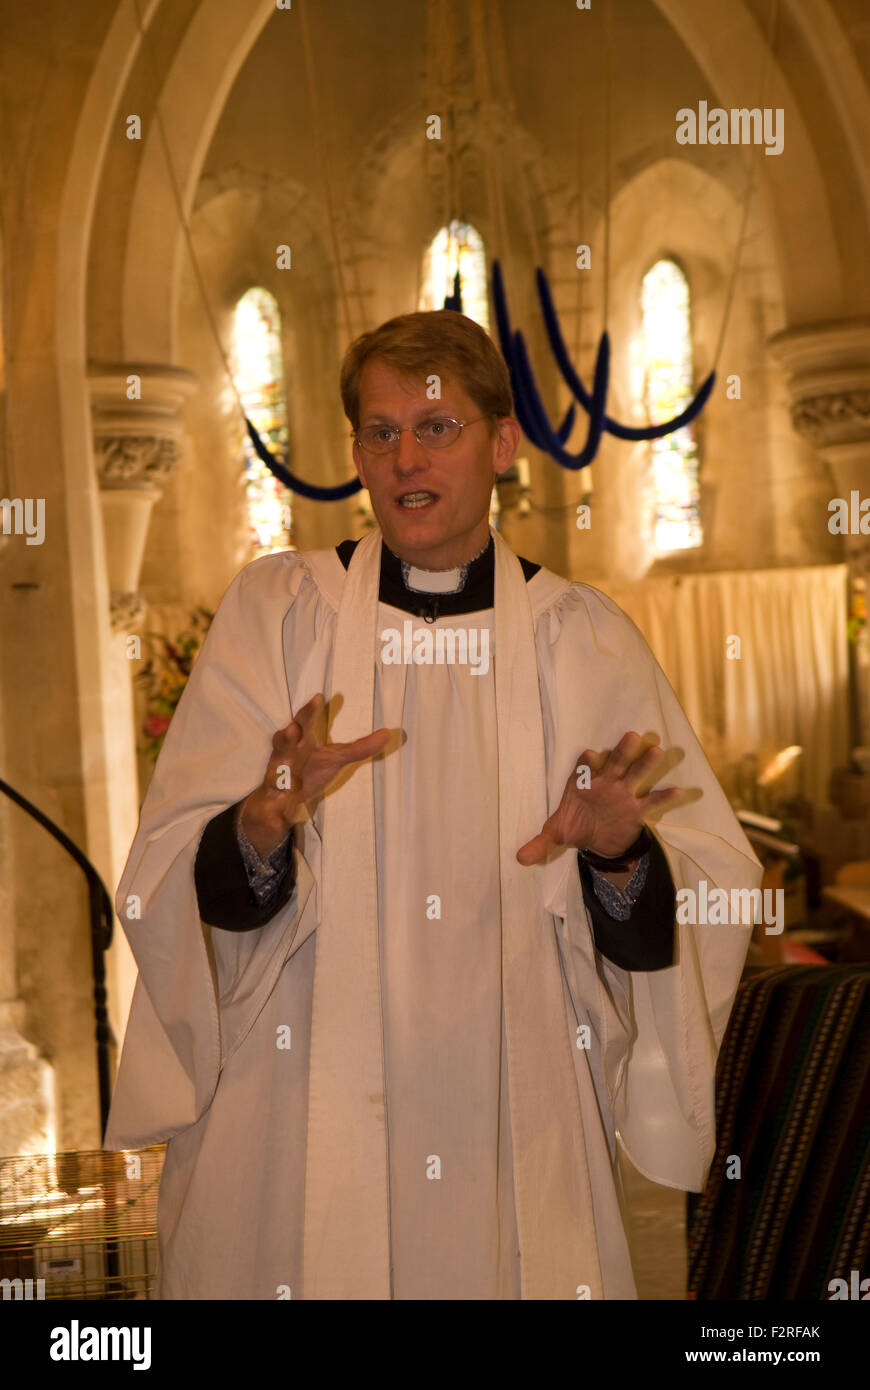 Vicar addressing the congregation during a Sunday morning service, Bramshott, near Liphook, Hampshire, UK. Stock Photo